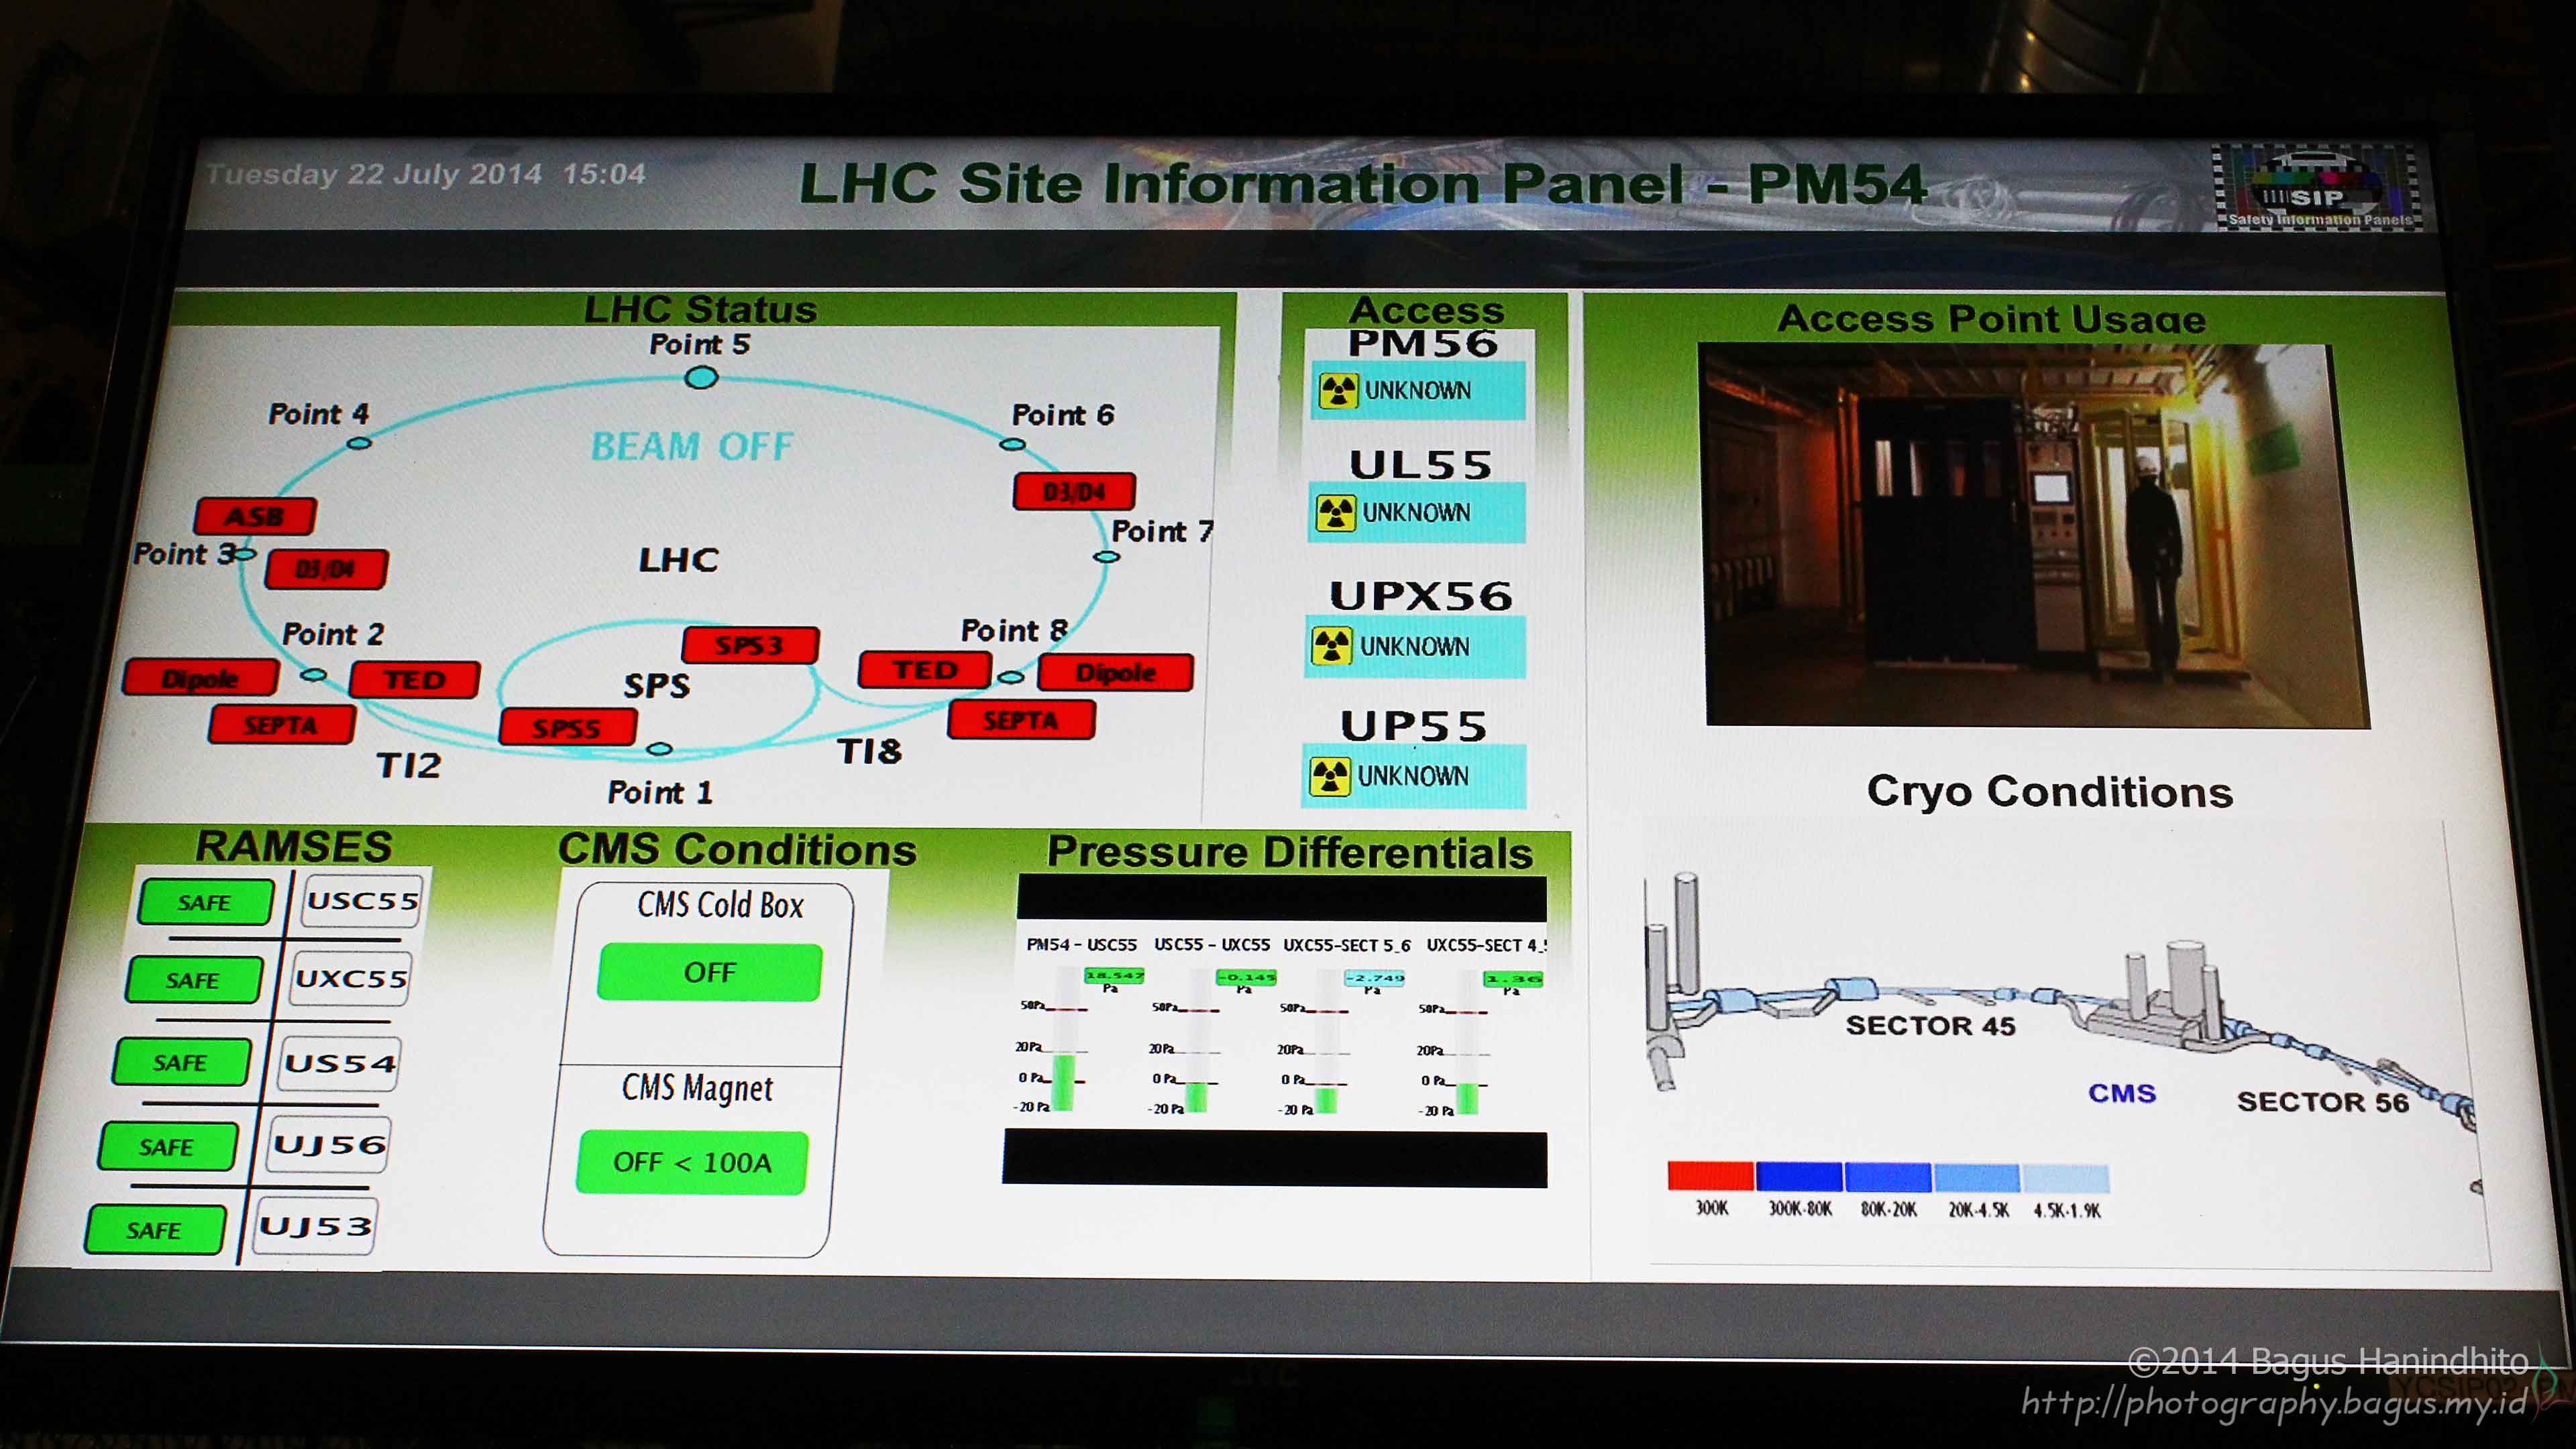 Large monitor shows CERN Information Panel for Point 5 - CMS